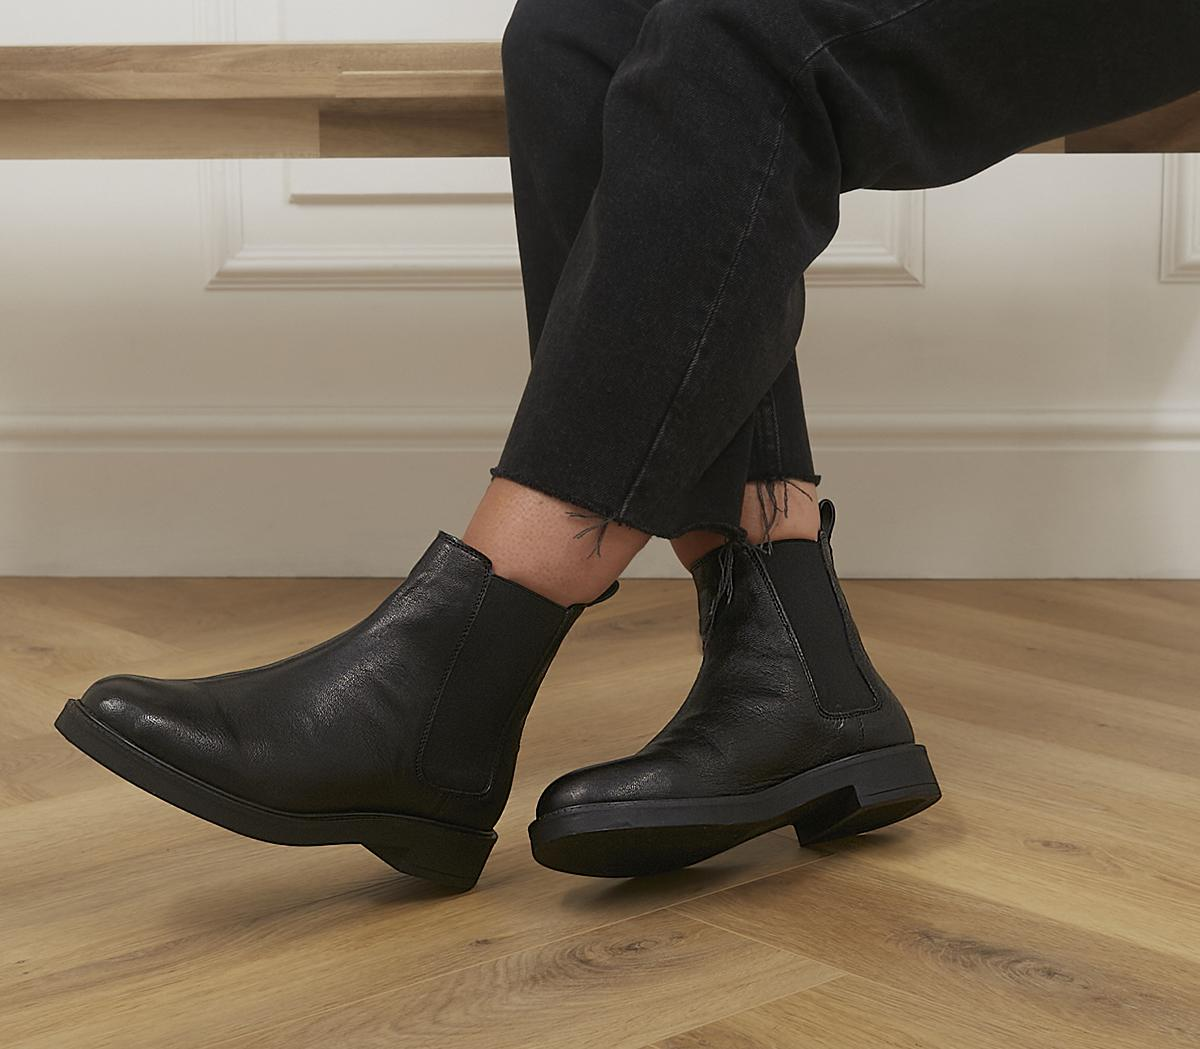 Artistry Chunky Smooth Sole Chelsea Boots